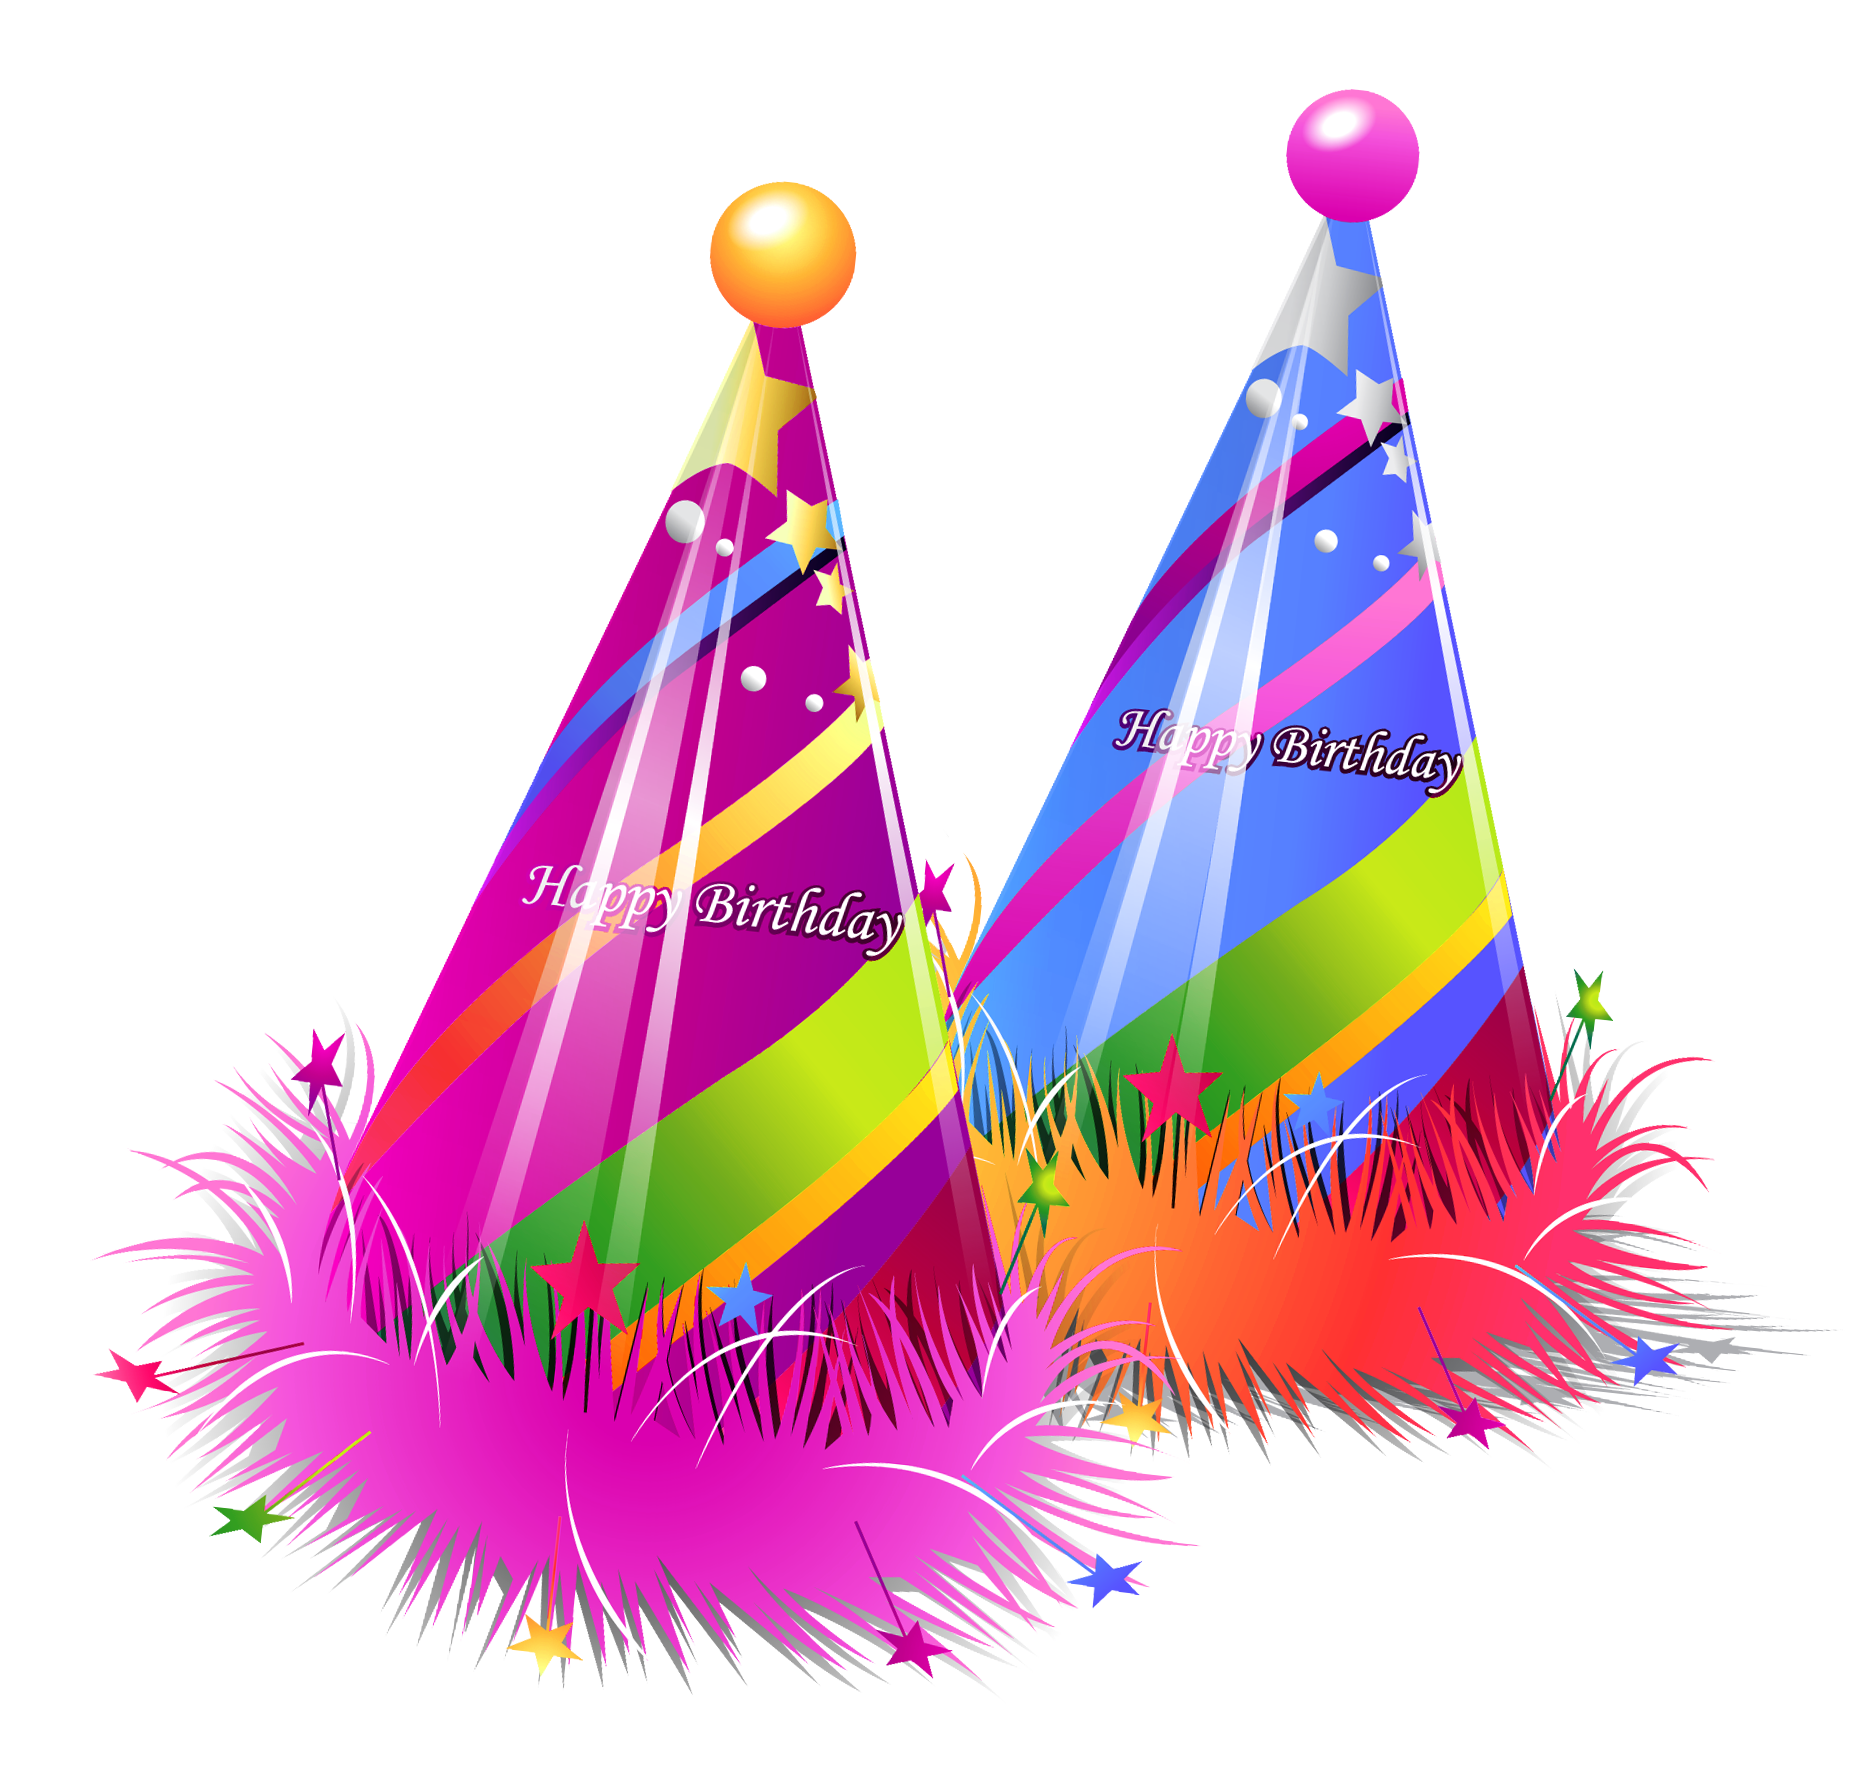 Birthday hat happy birthday party hats transparent clipart